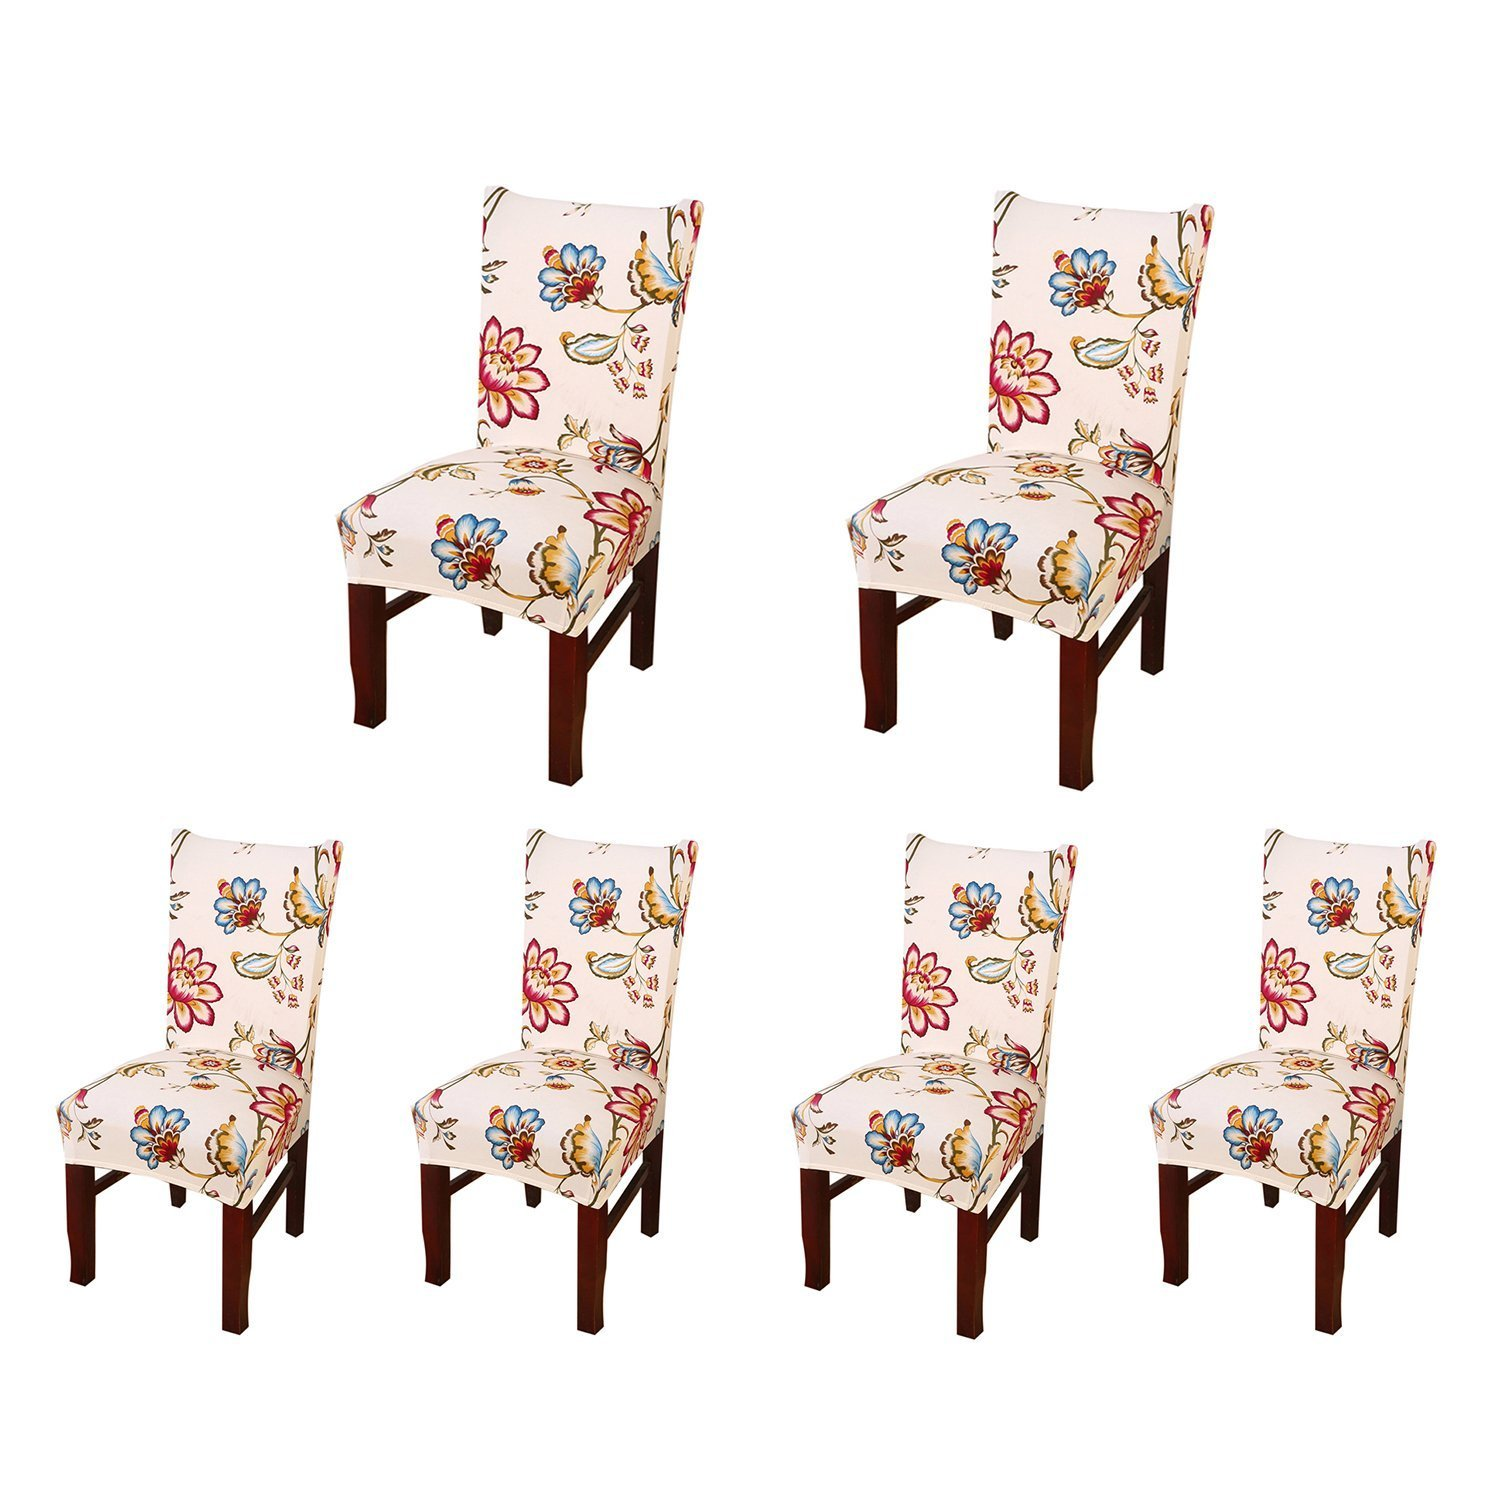 SoulFeel Set of 6 x Stretchable Dining Chair Covers, Spandex Chair Seat Protector Slipcovers for Holiday Banquet, Home Party, Hotel, Wedding Ceremony (Style 34, Floral)